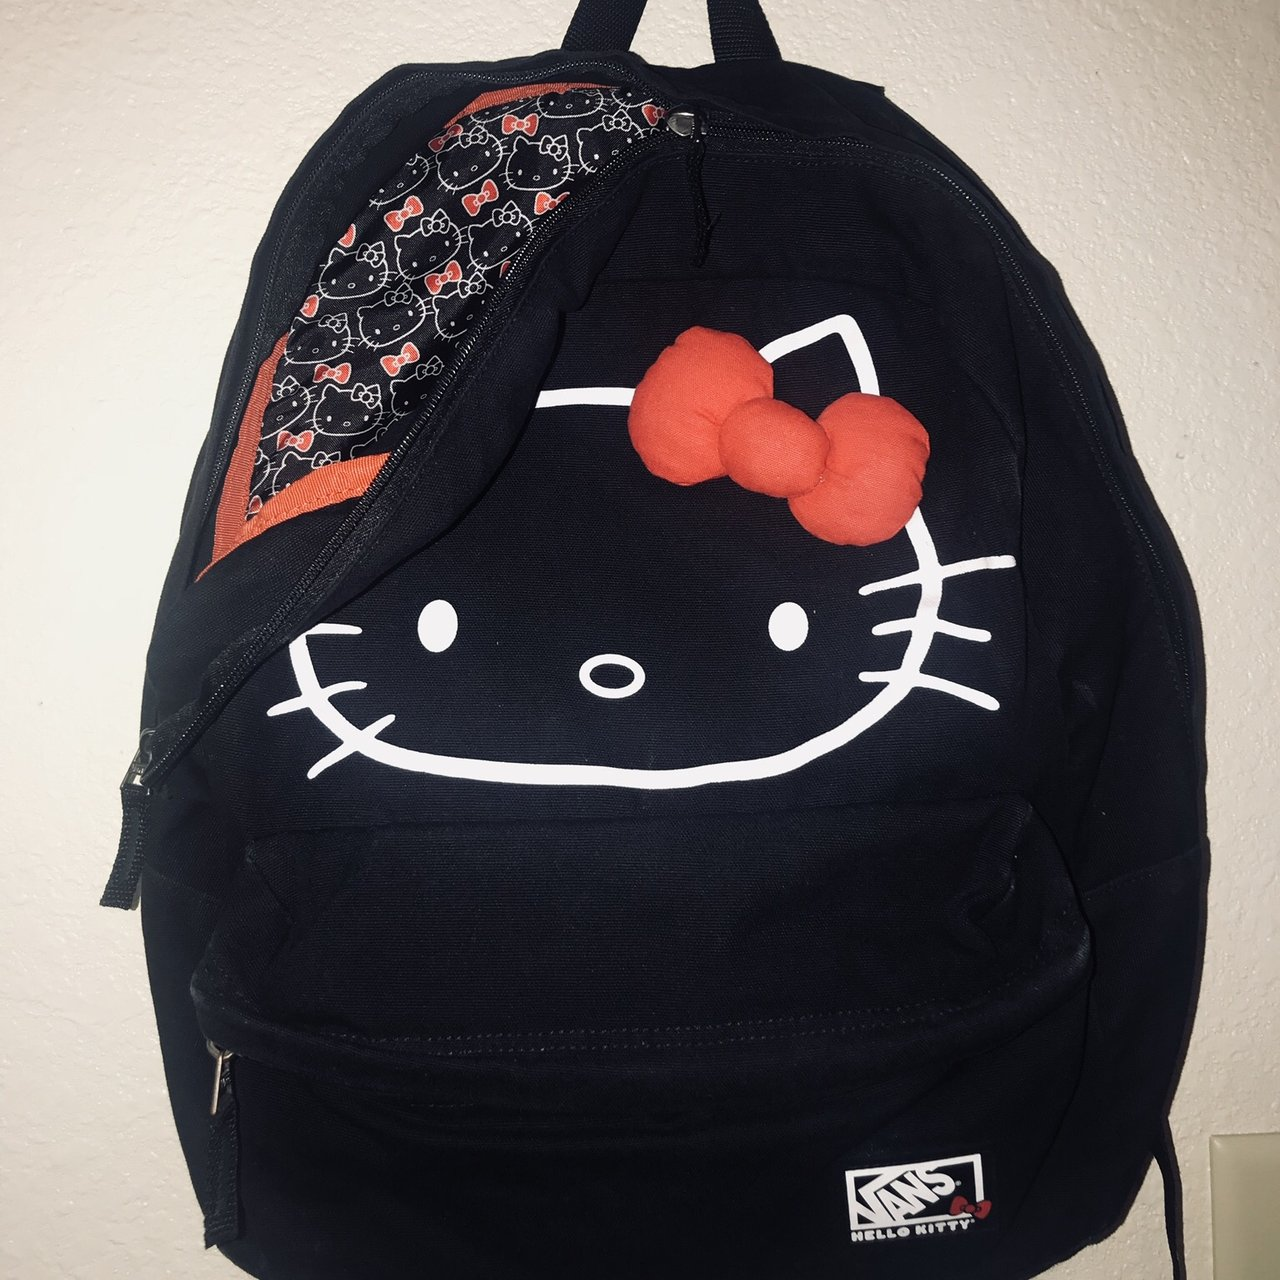 881850d79c0a Hello kitty vans backpack. Used just needs a little - Depop